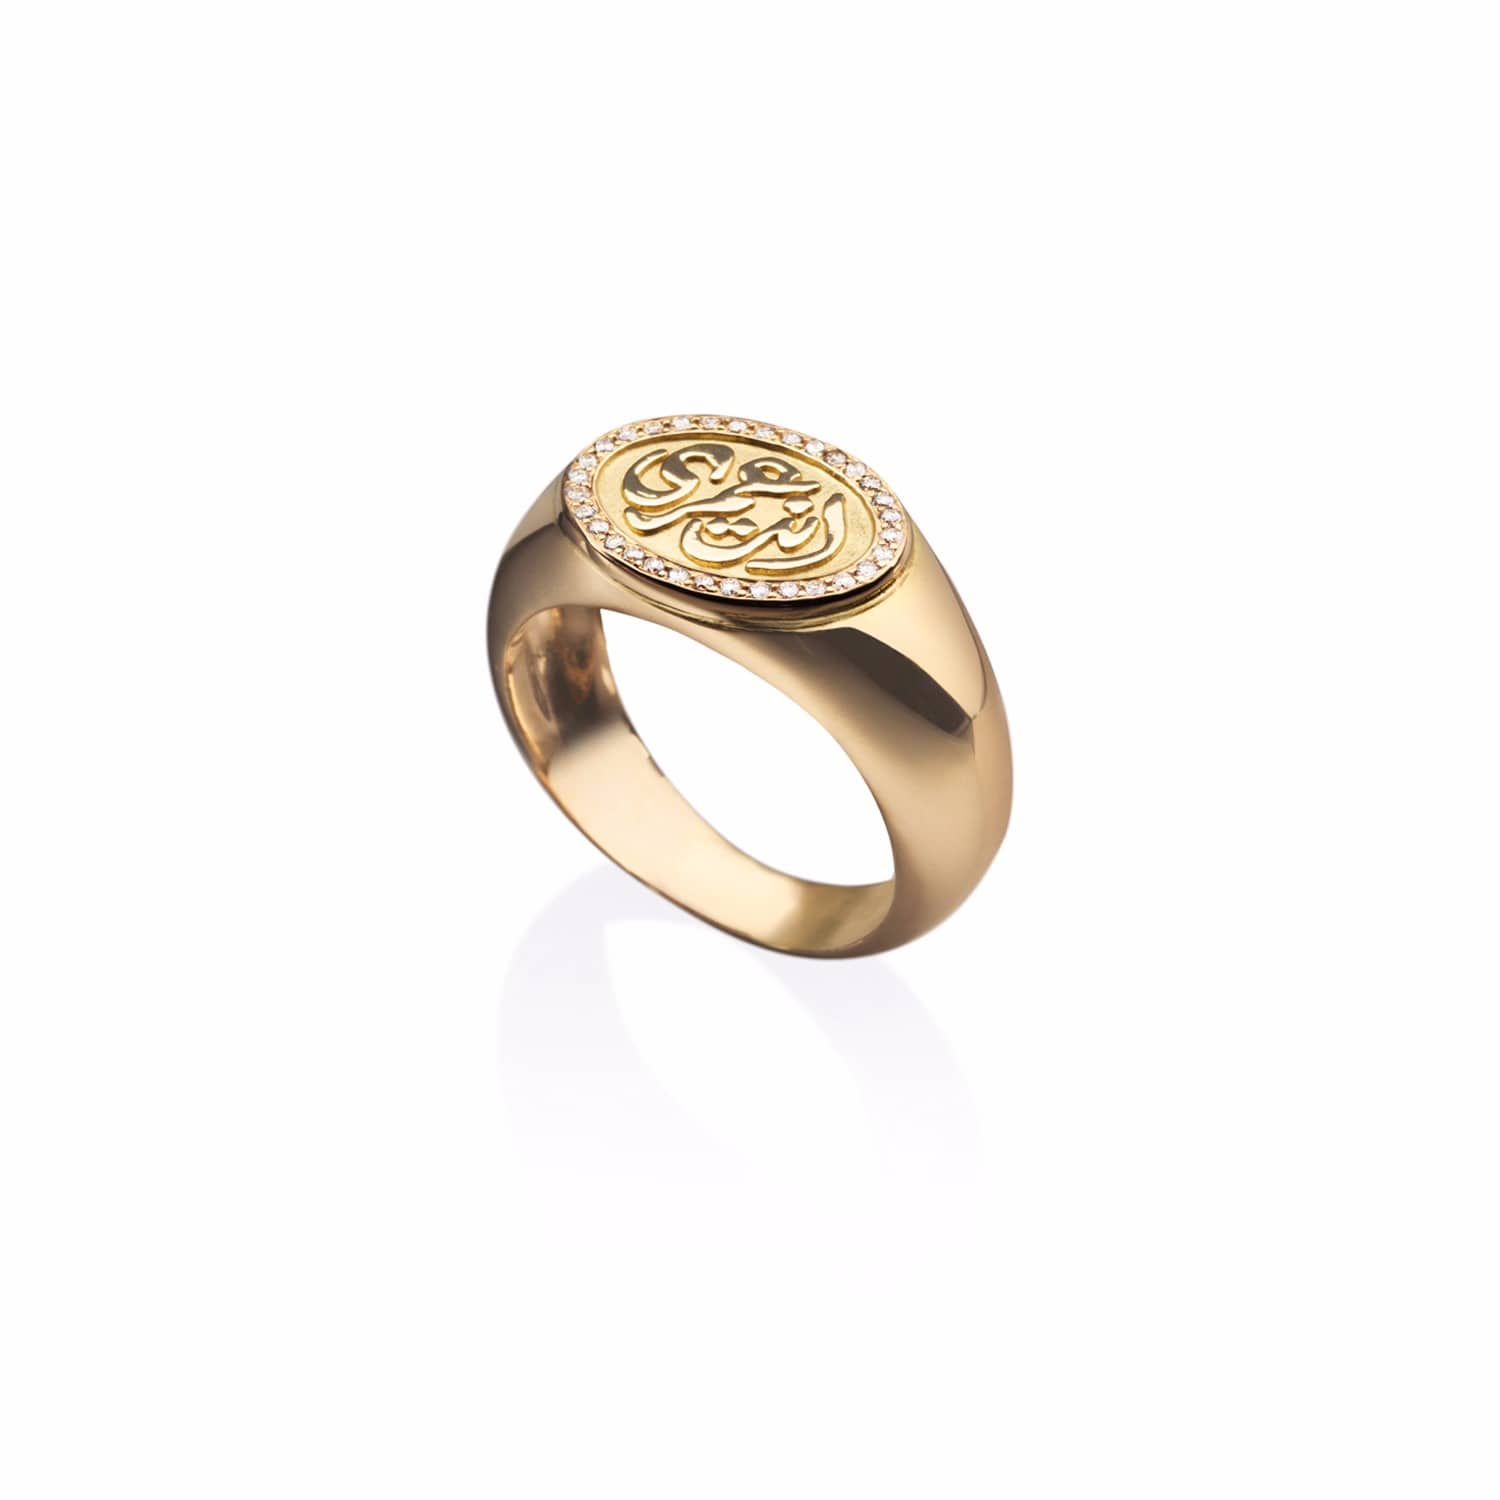 Eternity Chevalier Ring image 4f83d7a9edf